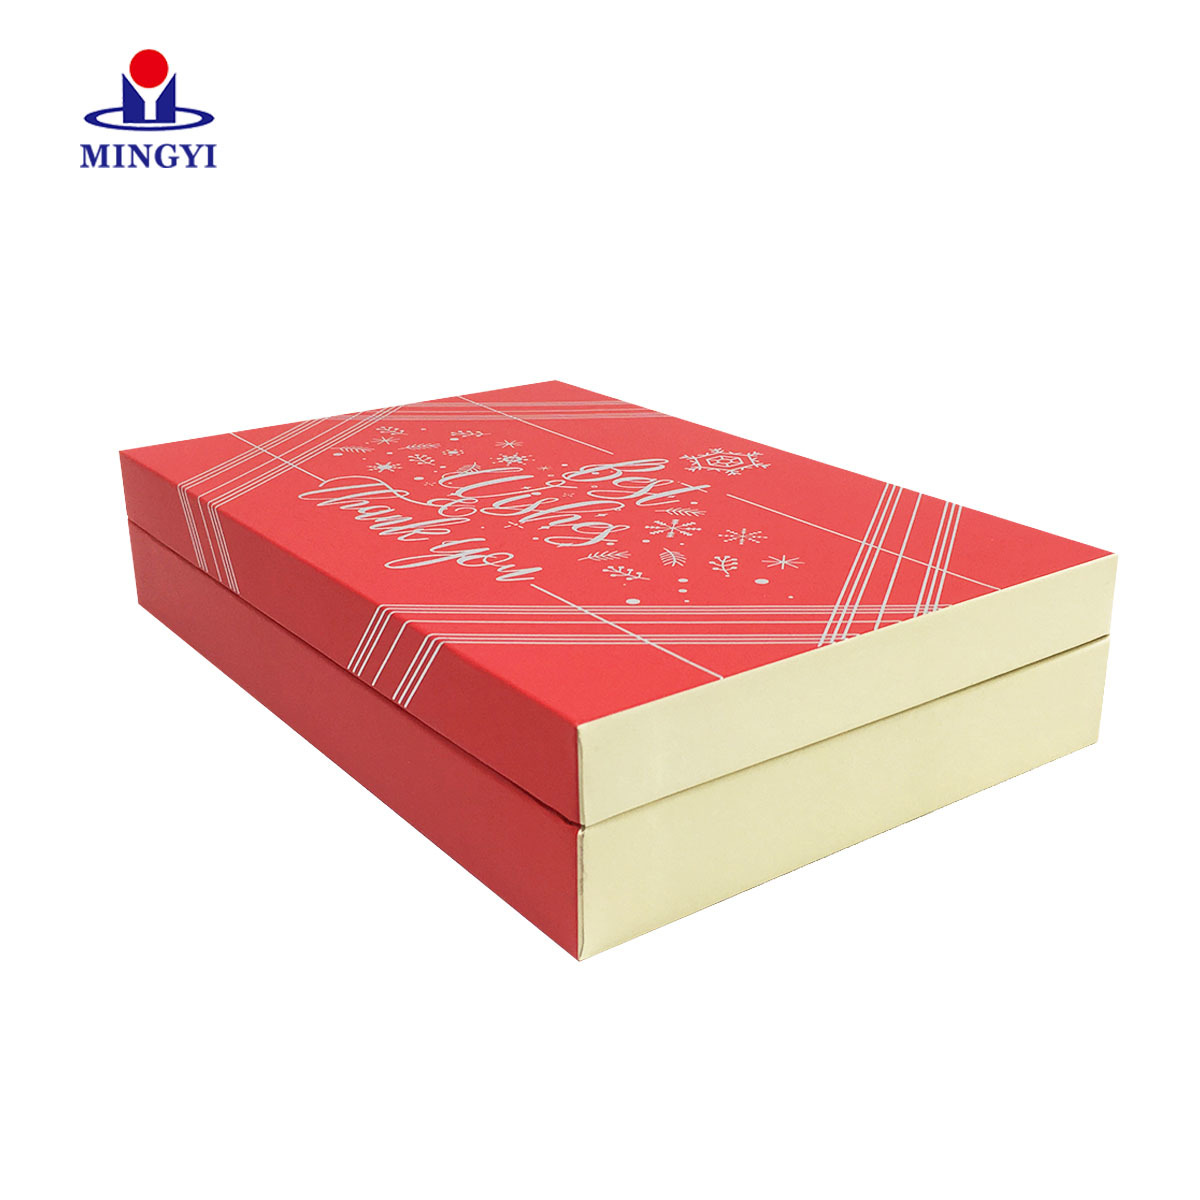 Clamshell gift card packaging box also for skin care chocolate watch bracelet jewelry eyelash